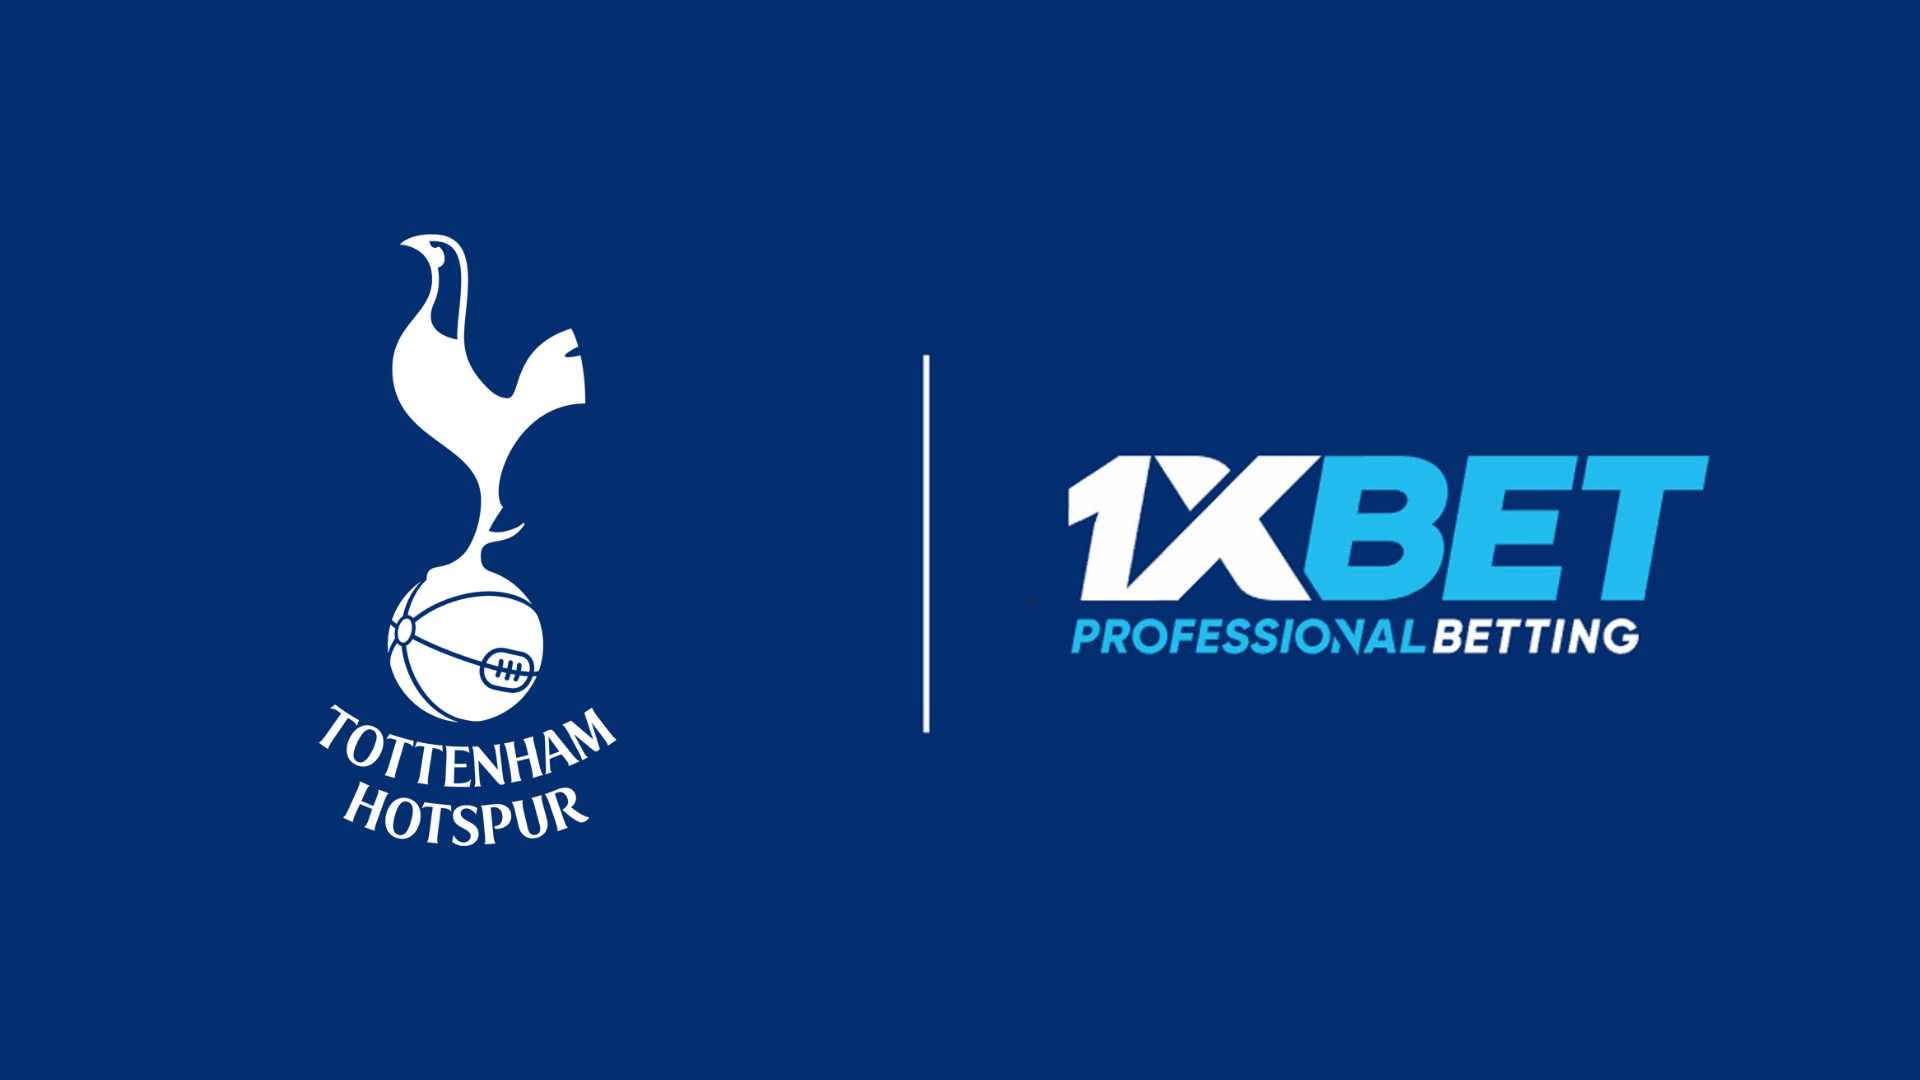 Tottenham Hotspur of the Premier League Burns Bridges with 1xBet